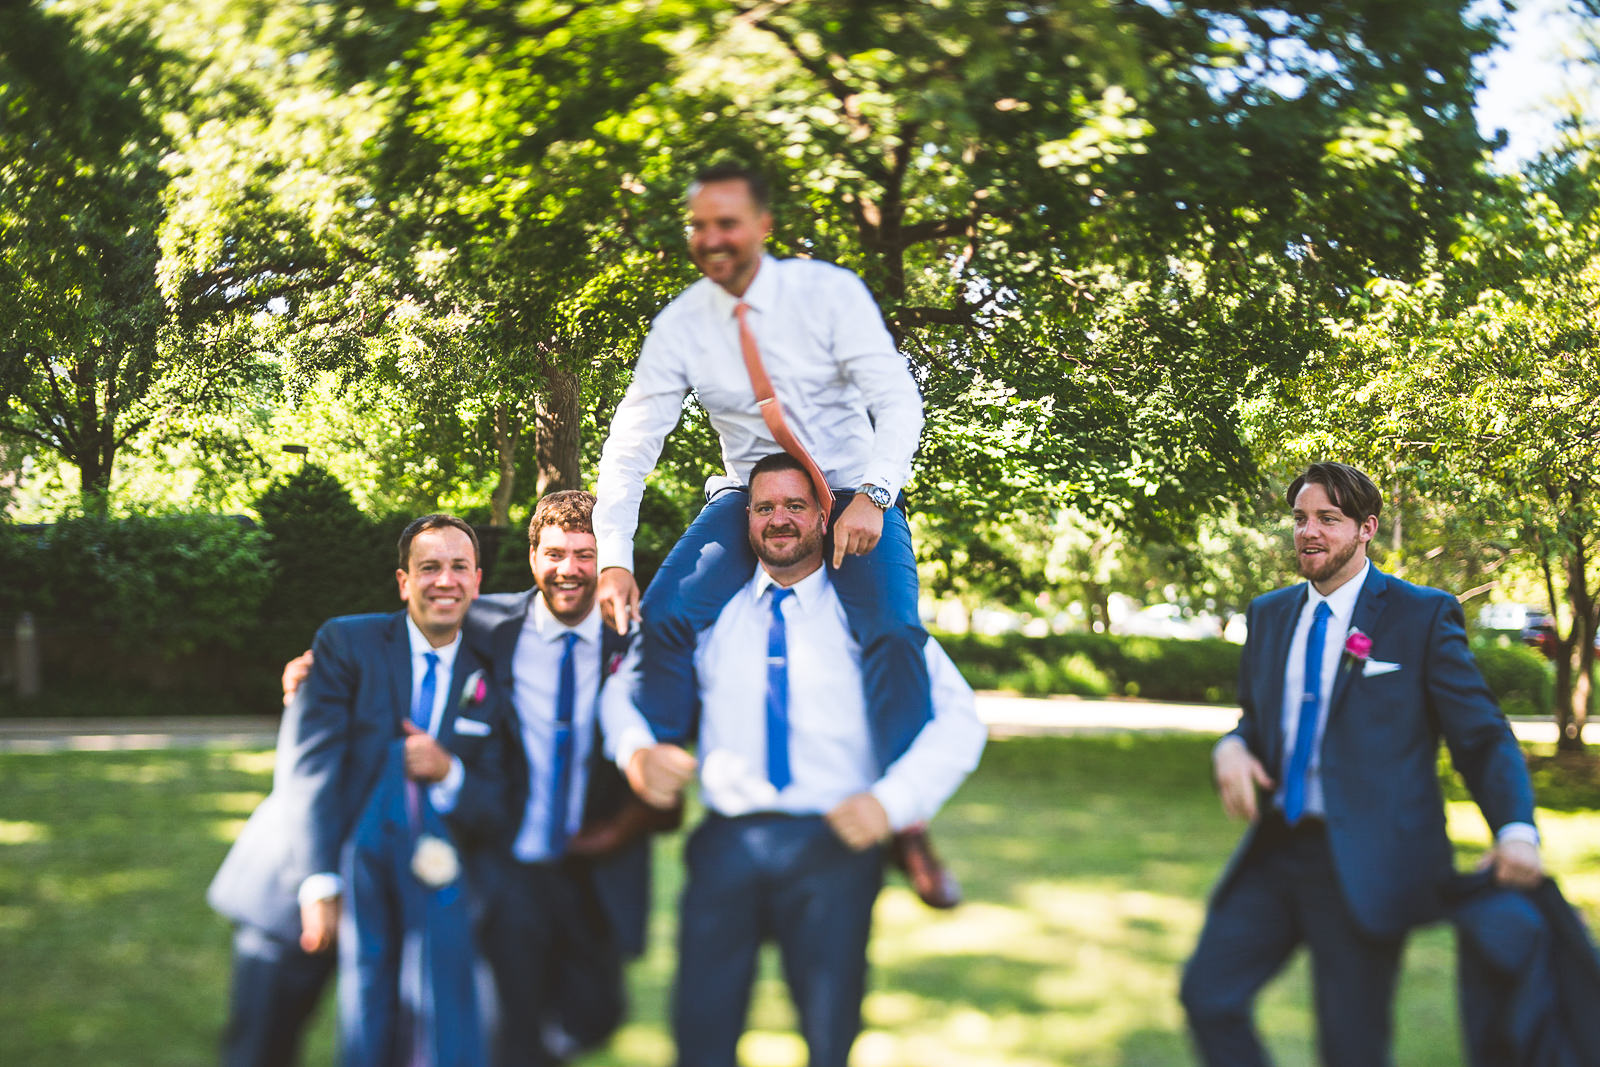 27 silly groomsmen - Natalie + Alan // Chicago Wedding Photographer at Cafe Brauer